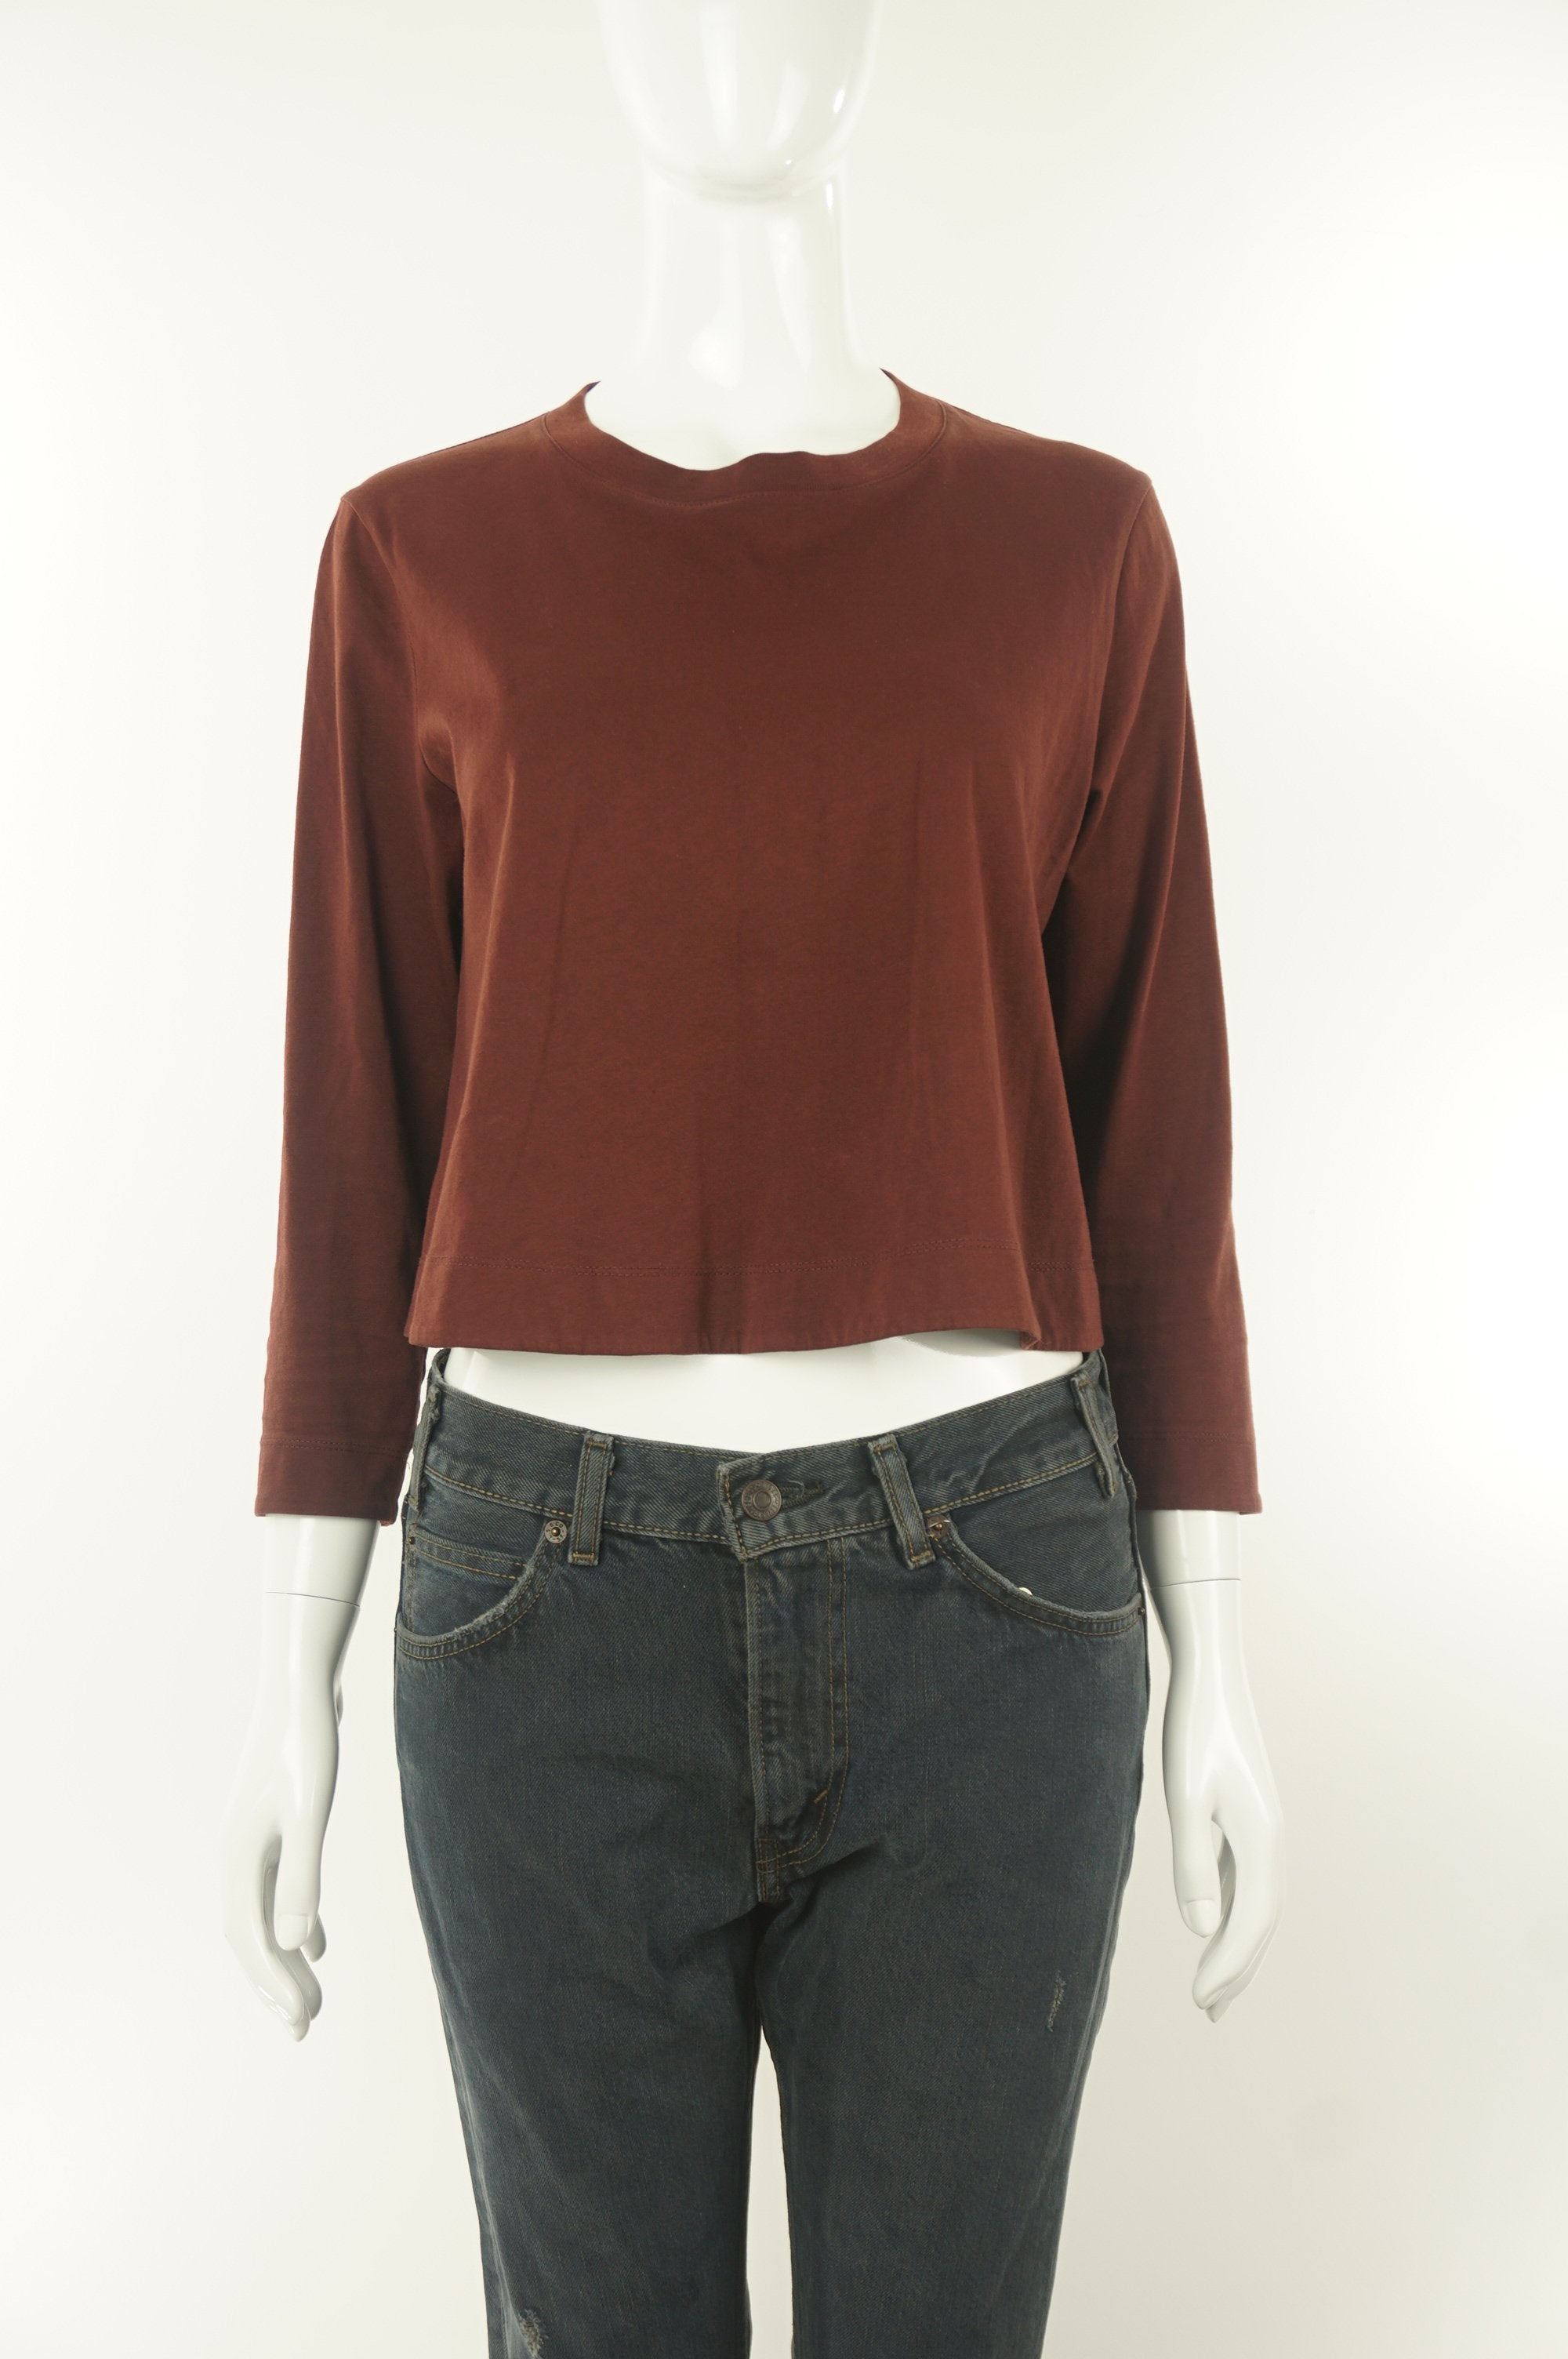 Wilfred Cute Comfy Burgundy Crop Top, If you believe in comfortable fashion that makes you look cute and not like you're trying so hard, this burgundy crop top is for you. , Red, 100% cotton, women's Tops, women's Red Tops, Wilfred women's Tops, wilfred crop top with midi sleeves, aritzia women's crop top, women's crop top